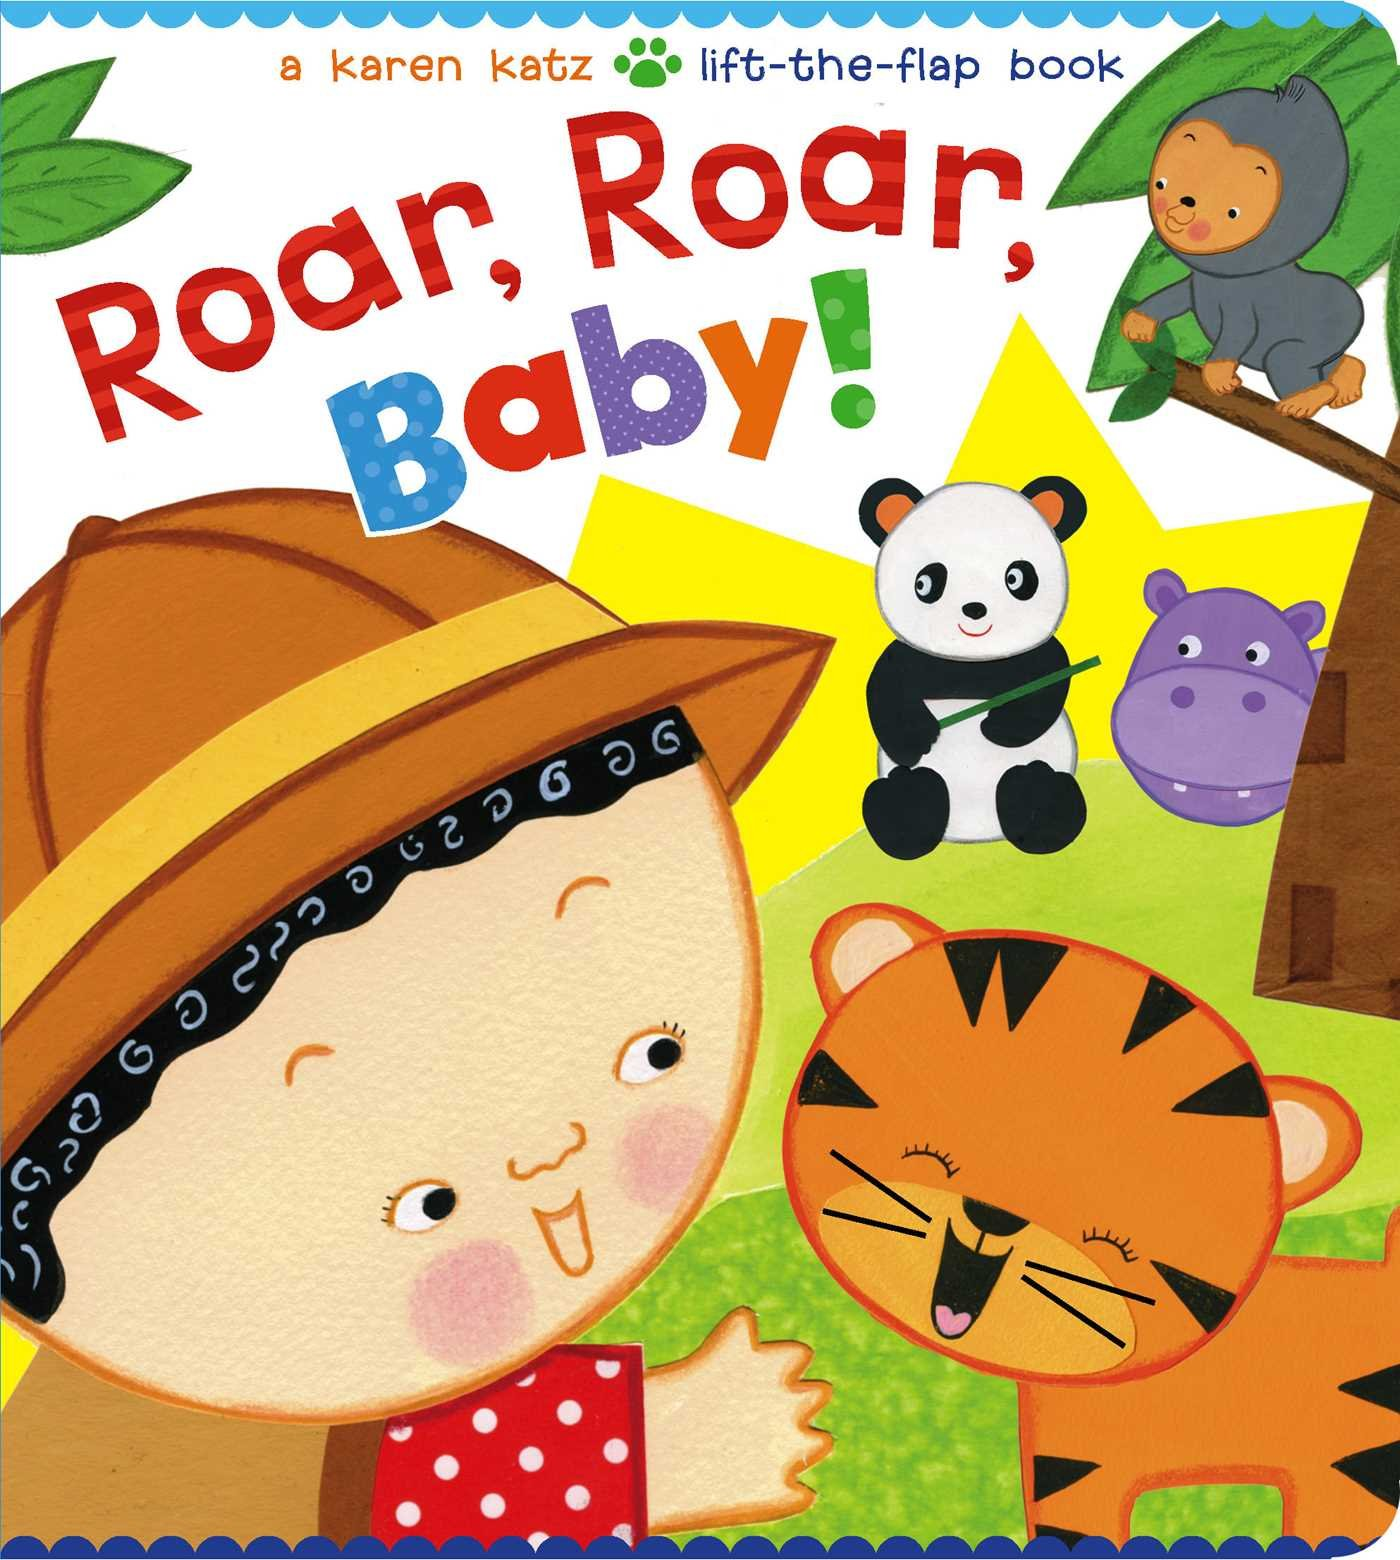 Roar, Roar, Baby!: A Karen Katz Lift-the-Flap Book (Karen Katz Lift-the-Flap Books) PDF